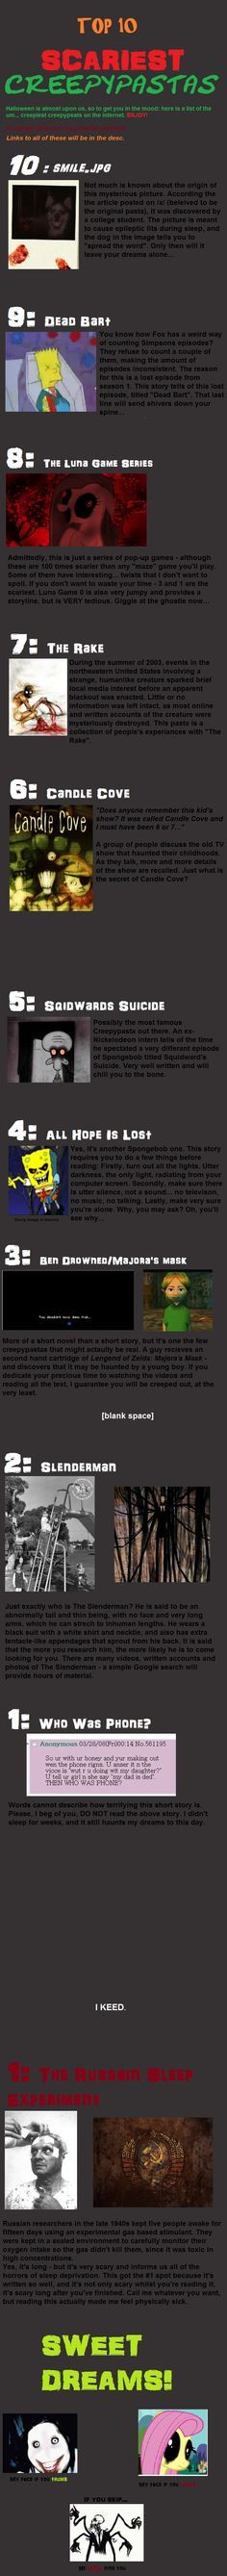 Top 10 Scariest Creepypastas. The experiment one didn't scare me AT ALL. Smile.jpg, Luna Games, Slendery and Jeff did (WHY ISN'T JEFF ON HERE?)